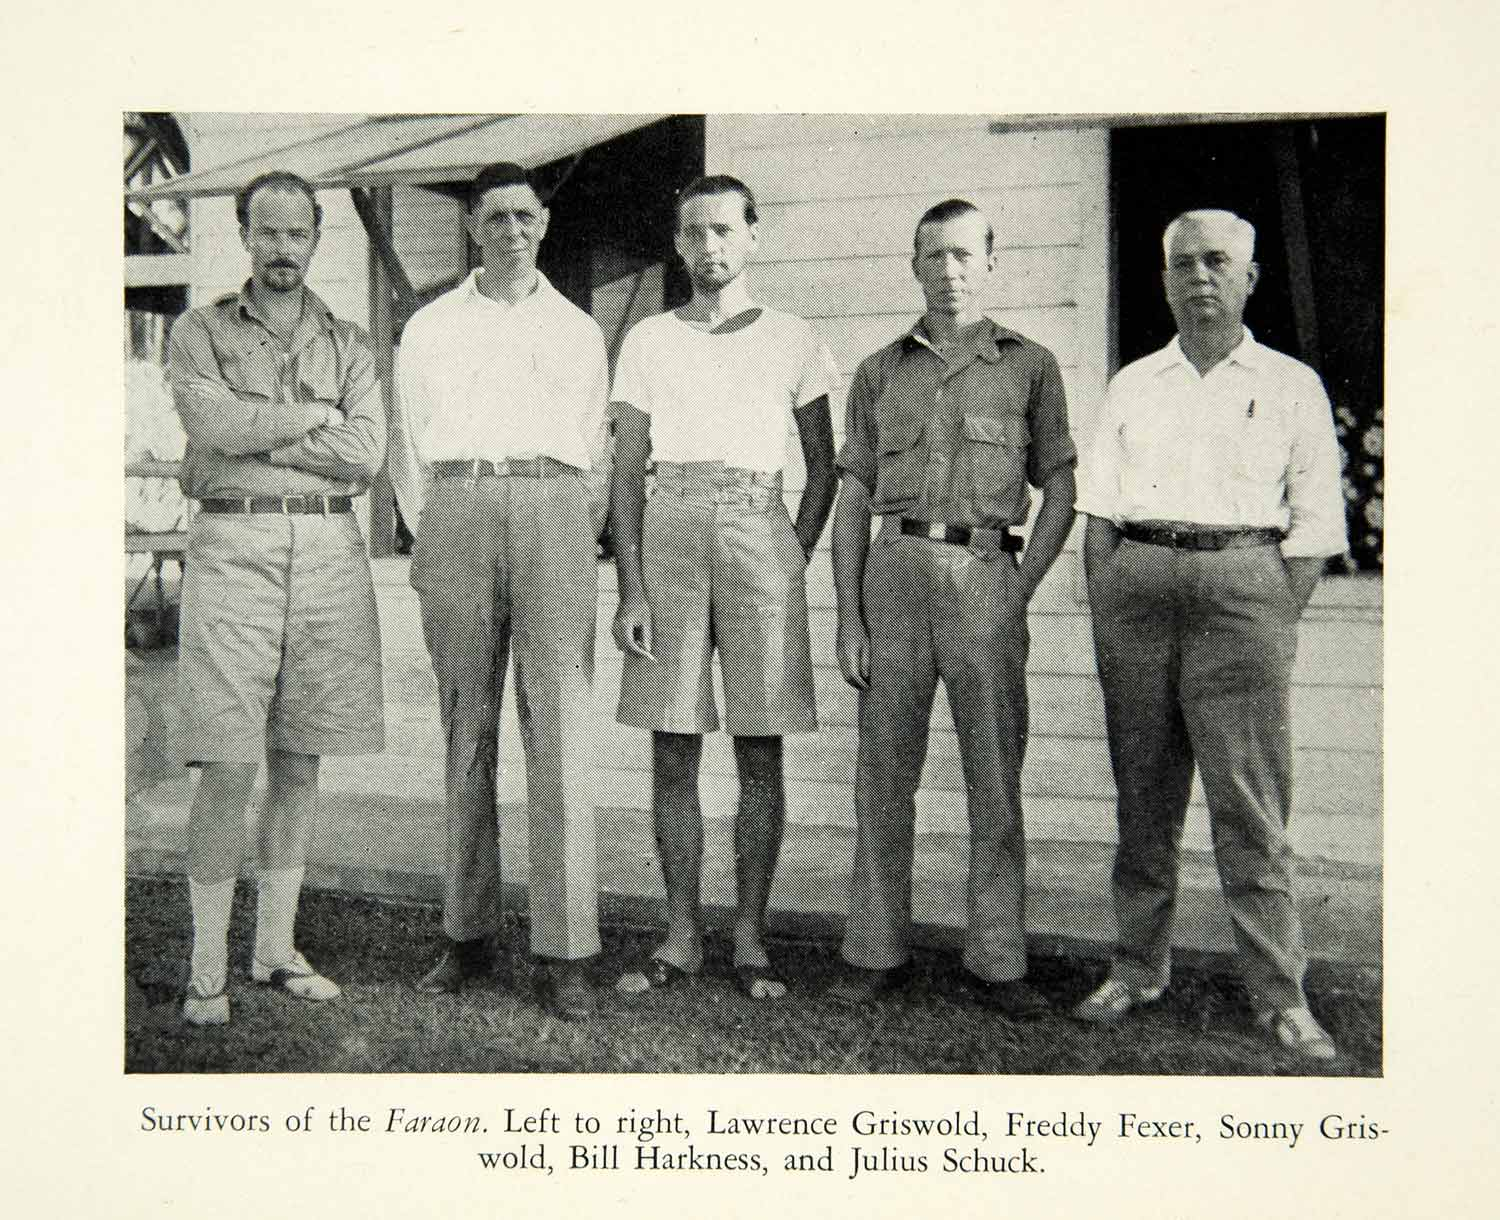 1937 Print Survivors Faraon Ship Lawrence Griswold Freddy Fexer Harkness XGWC1